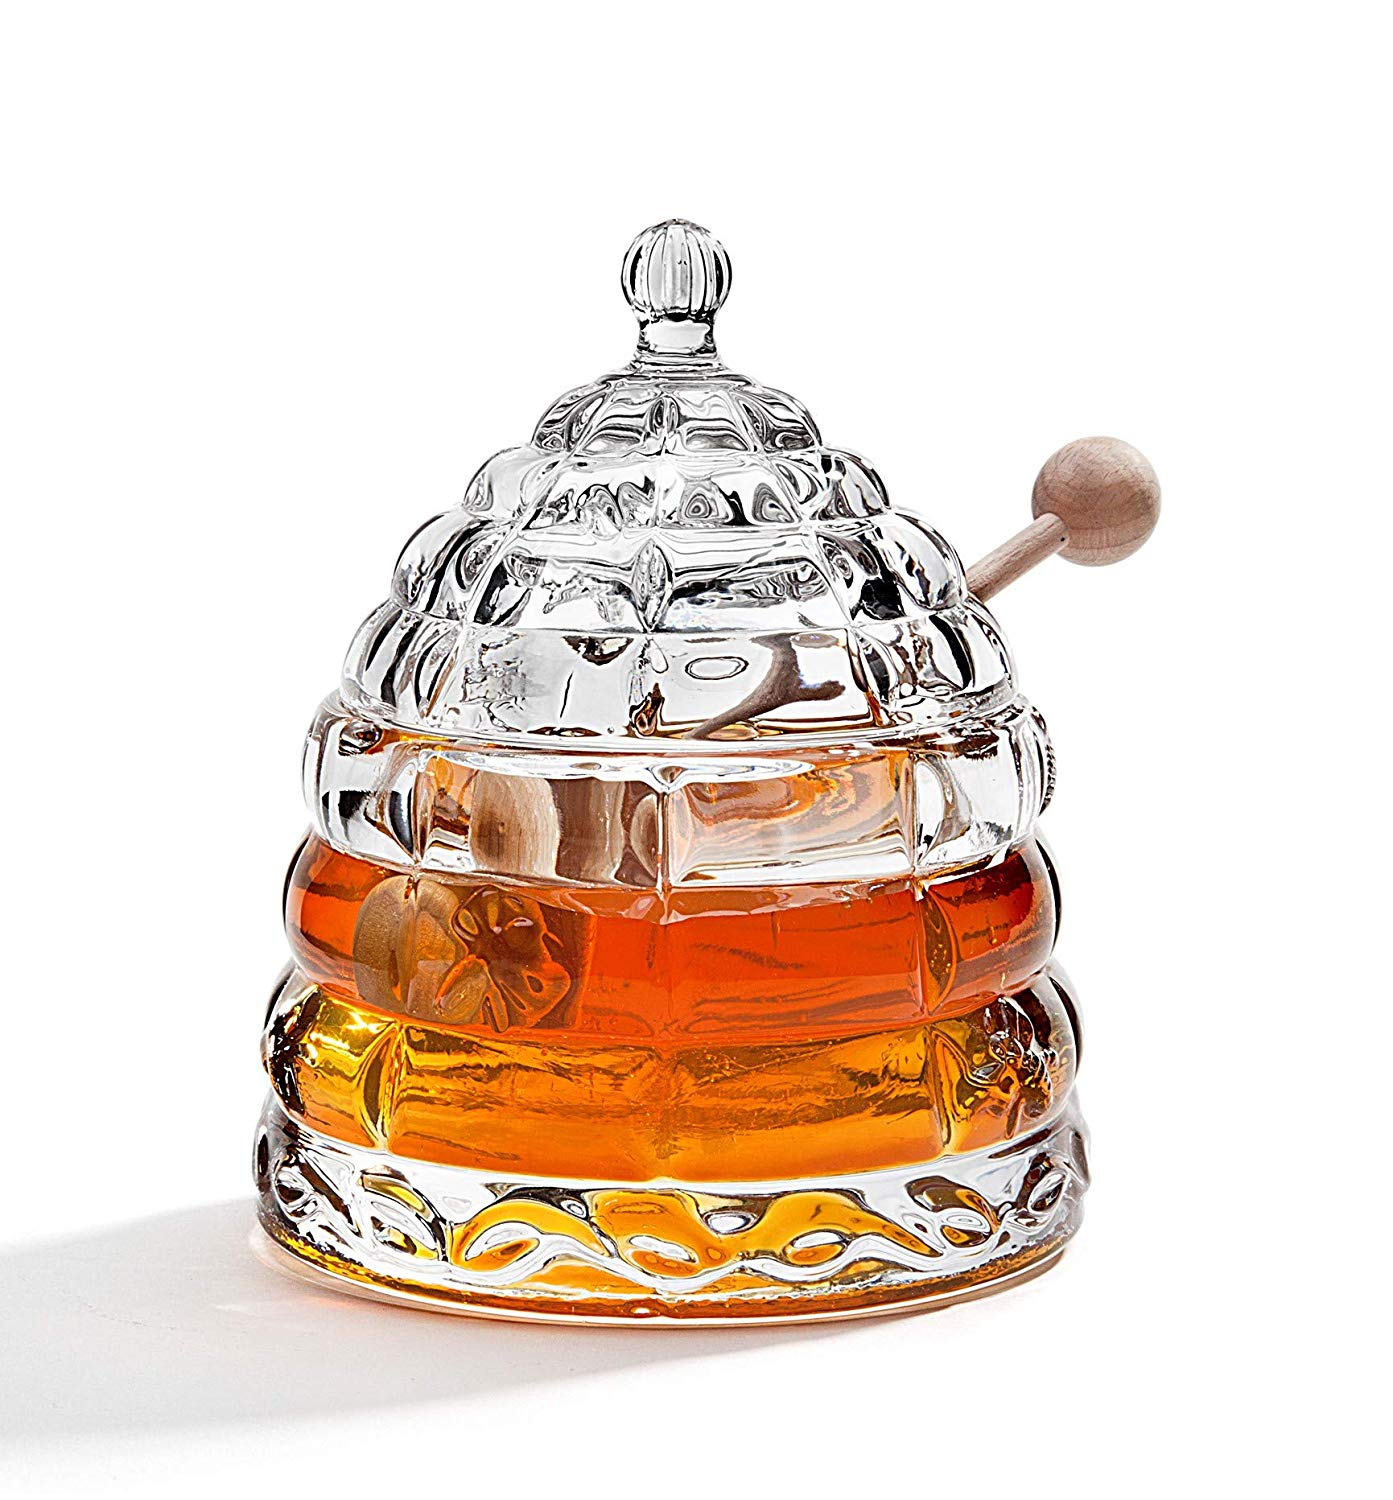 honey-hive-container-crystal.jpg